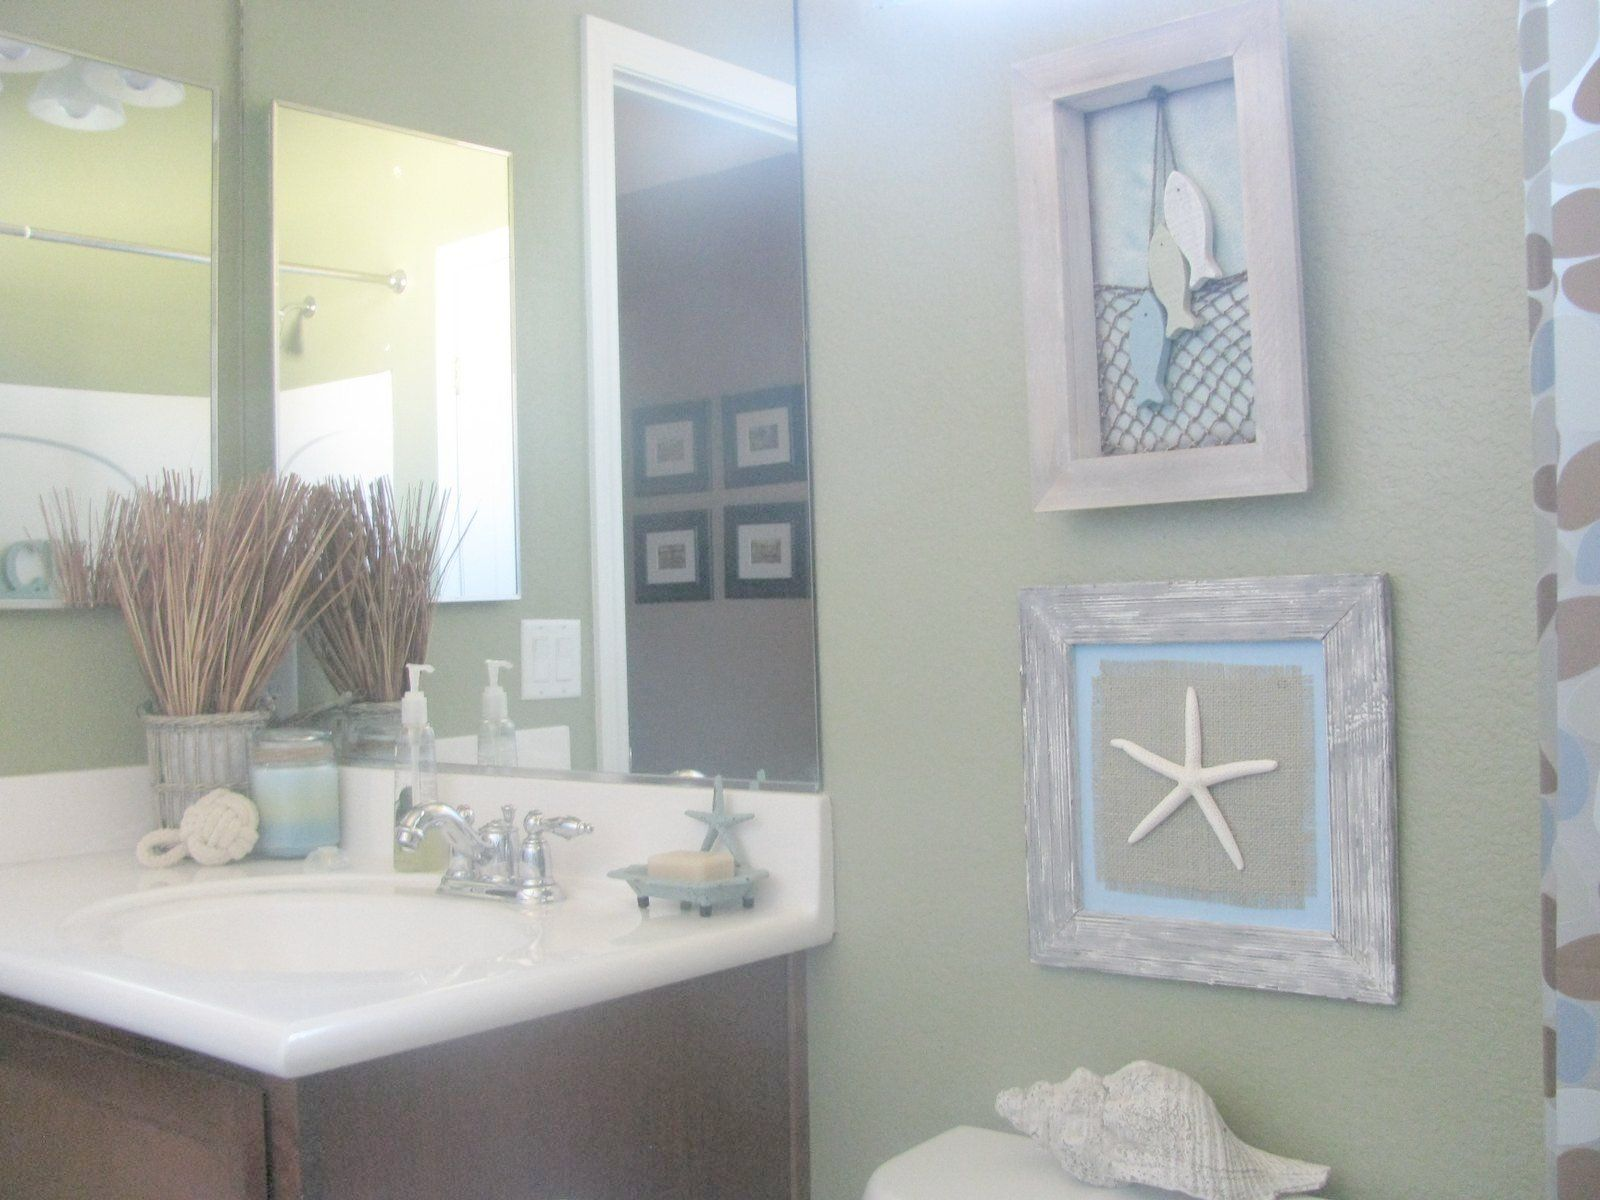 Costal Bathroom Decor: Sand Colored Bathroom With Light Color (sea Glass Green